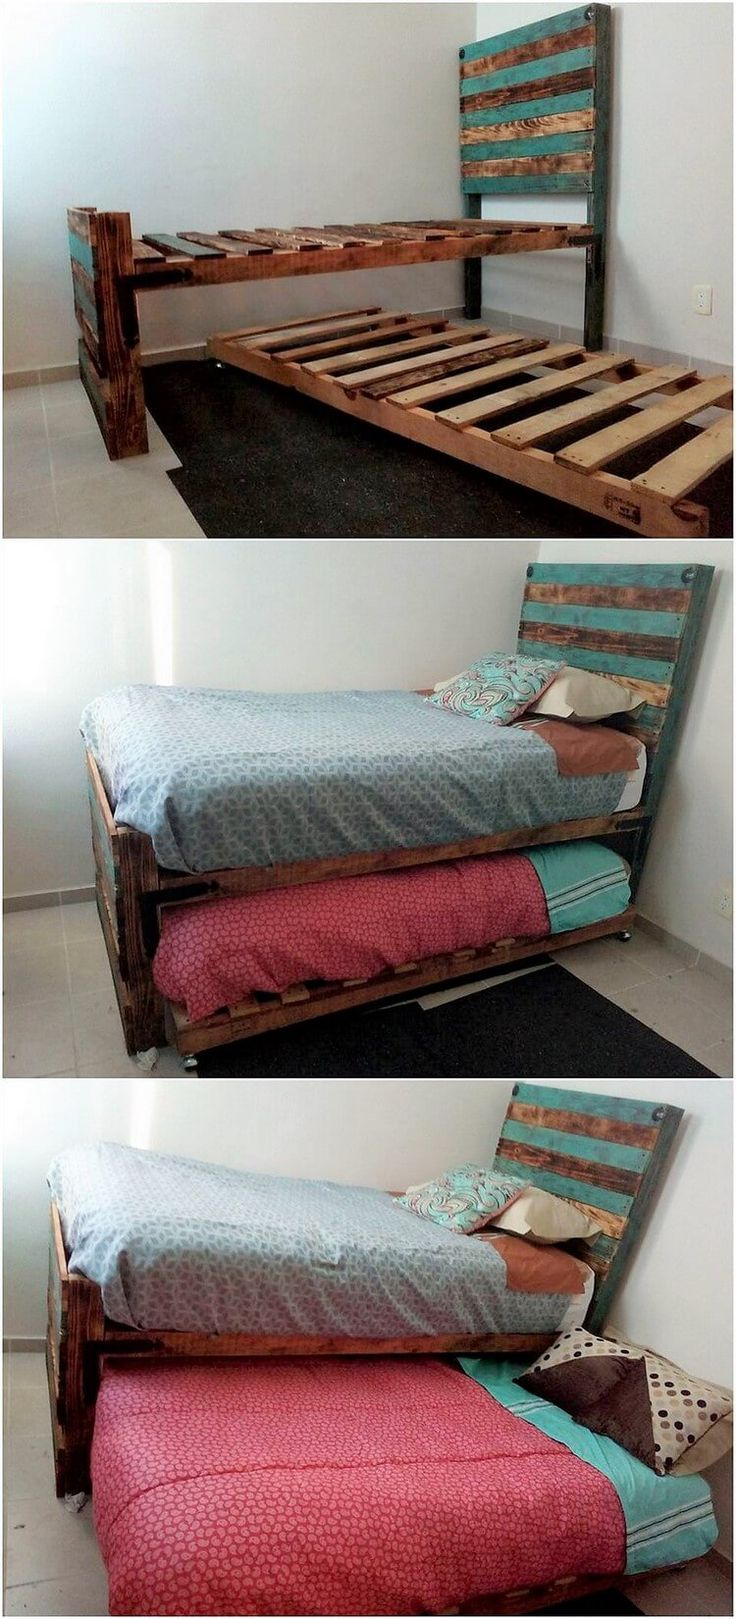 Bringing you up with the creative ideas of wood pallet we have the trendy designed concept of wood pallet double bed design. Square shaped design is completely put into the hues of wood pallet patterns where two beds are attached with one another.